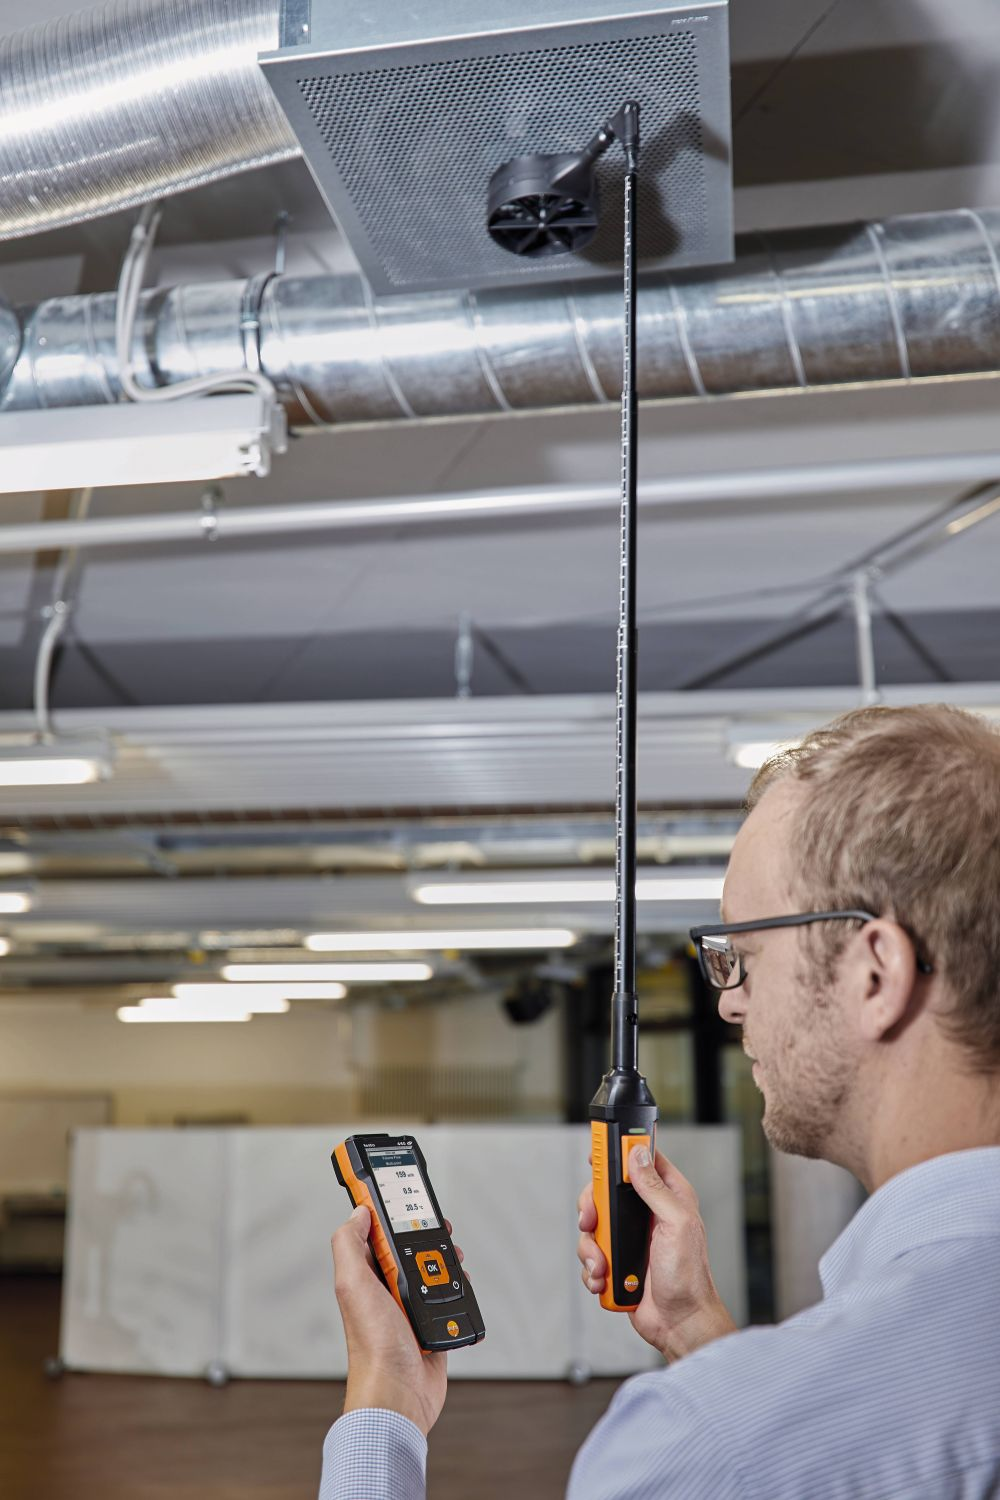 Volumetric flow measurement at ceiling outlets with vane probe (Ø 100 mm) and testo 440